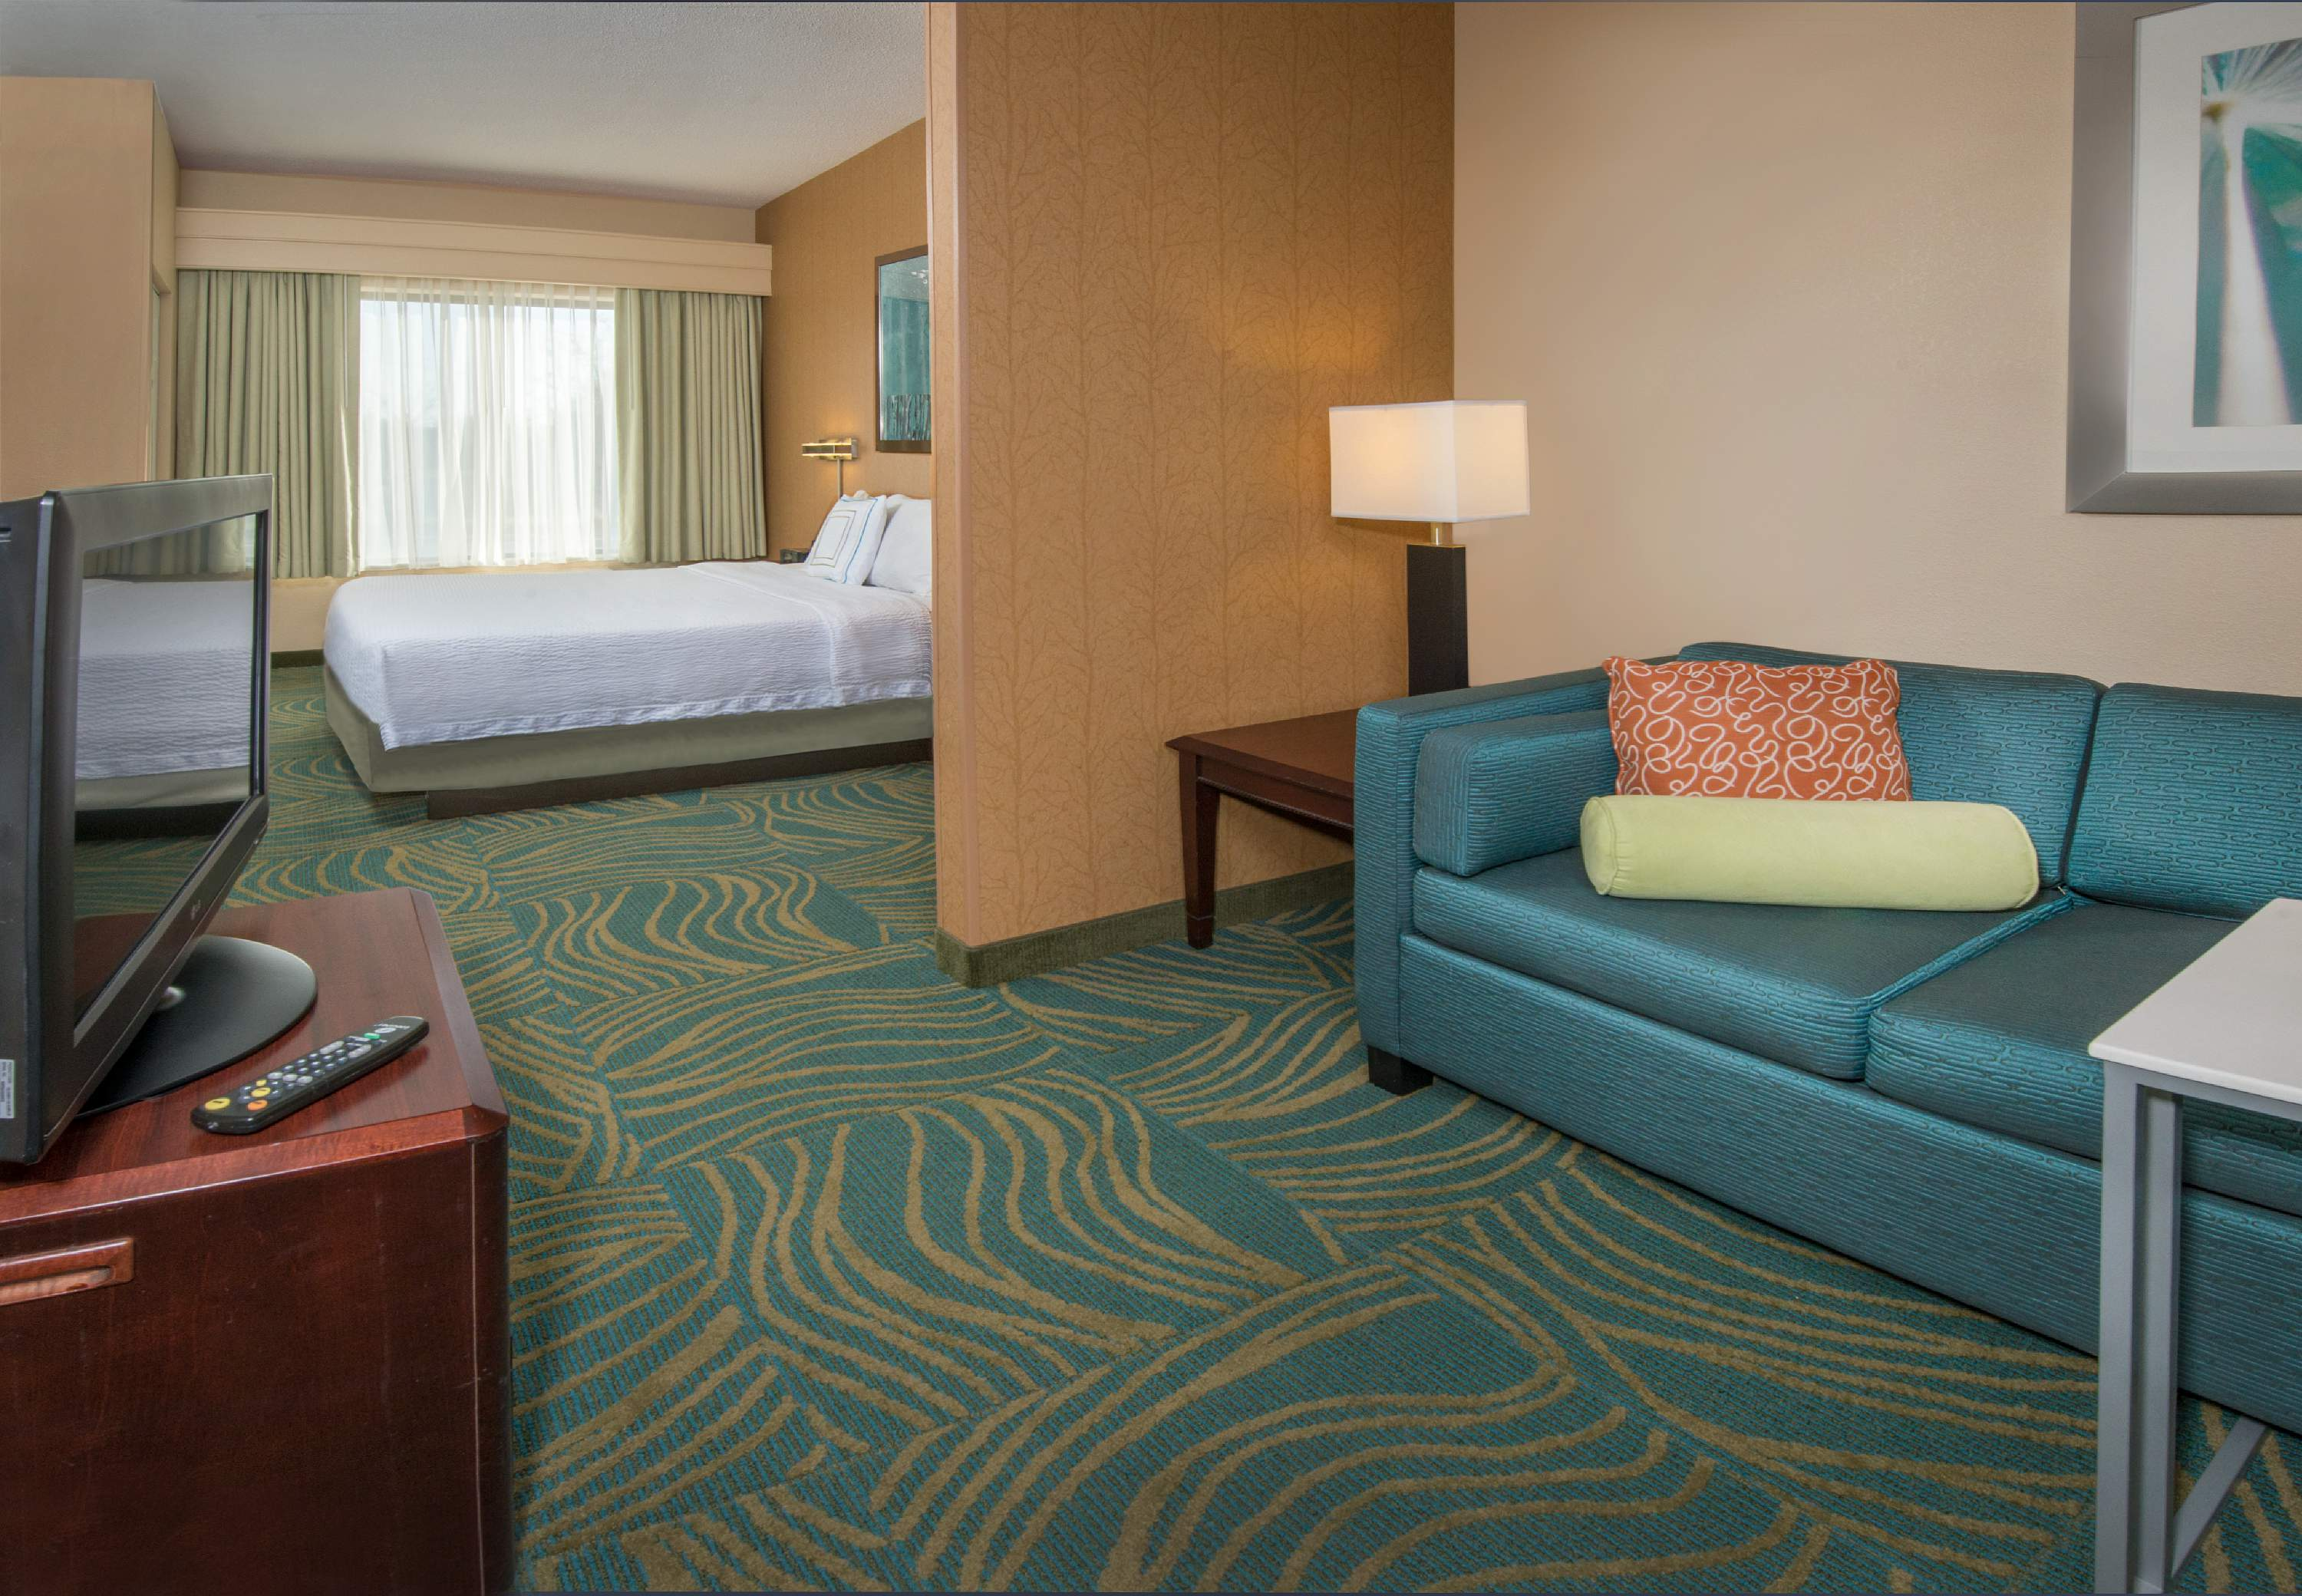 SpringHill Suites by Marriott Edgewood Aberdeen image 12